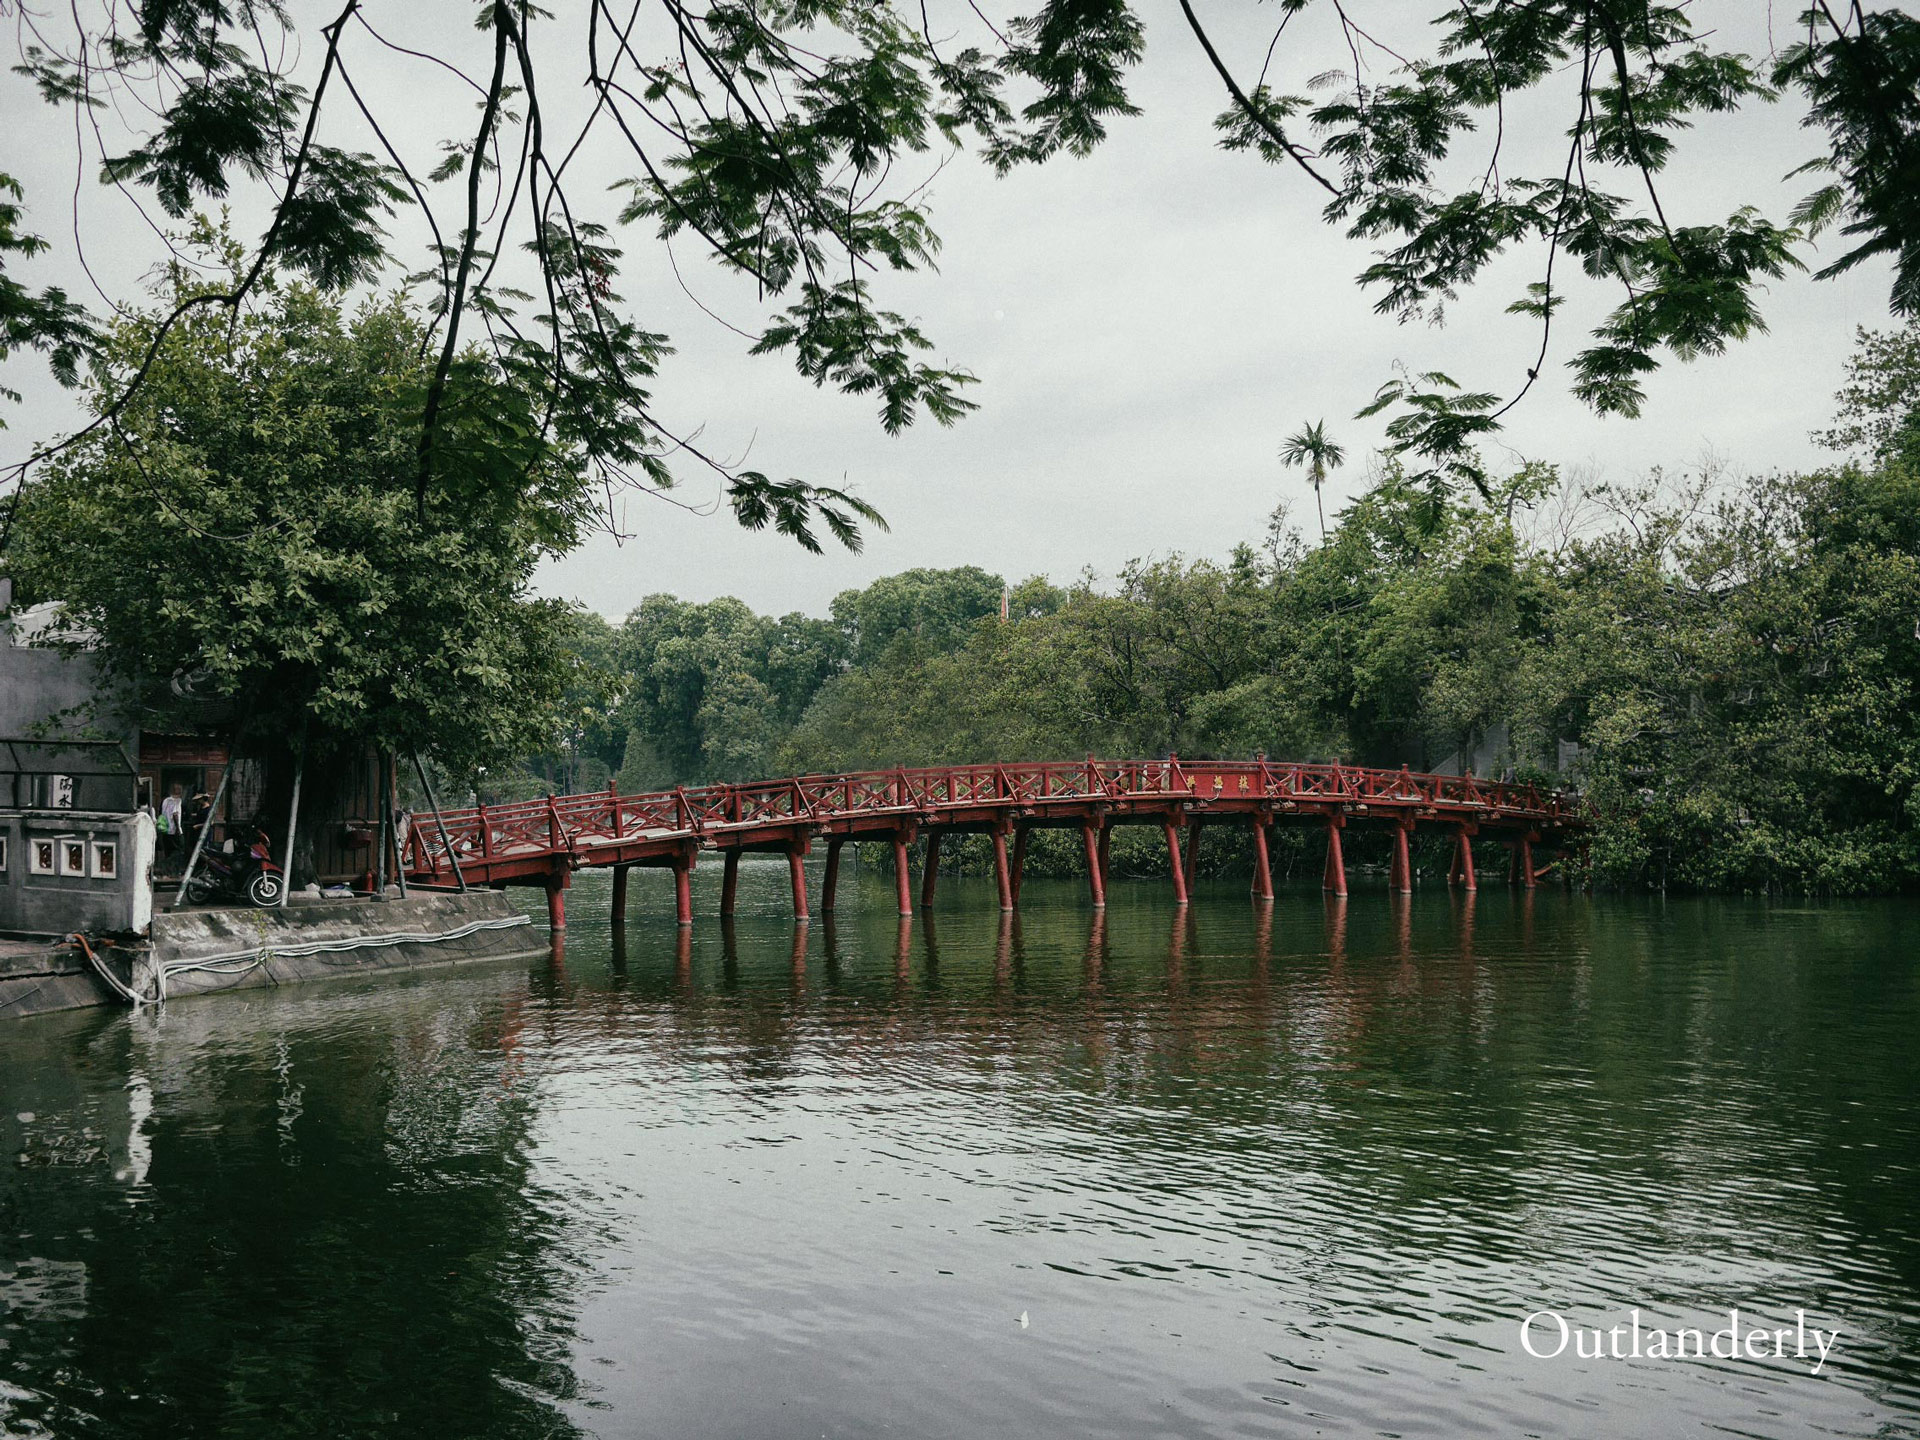 Hoan-Kiem-Lake-Outlanderly-Travel